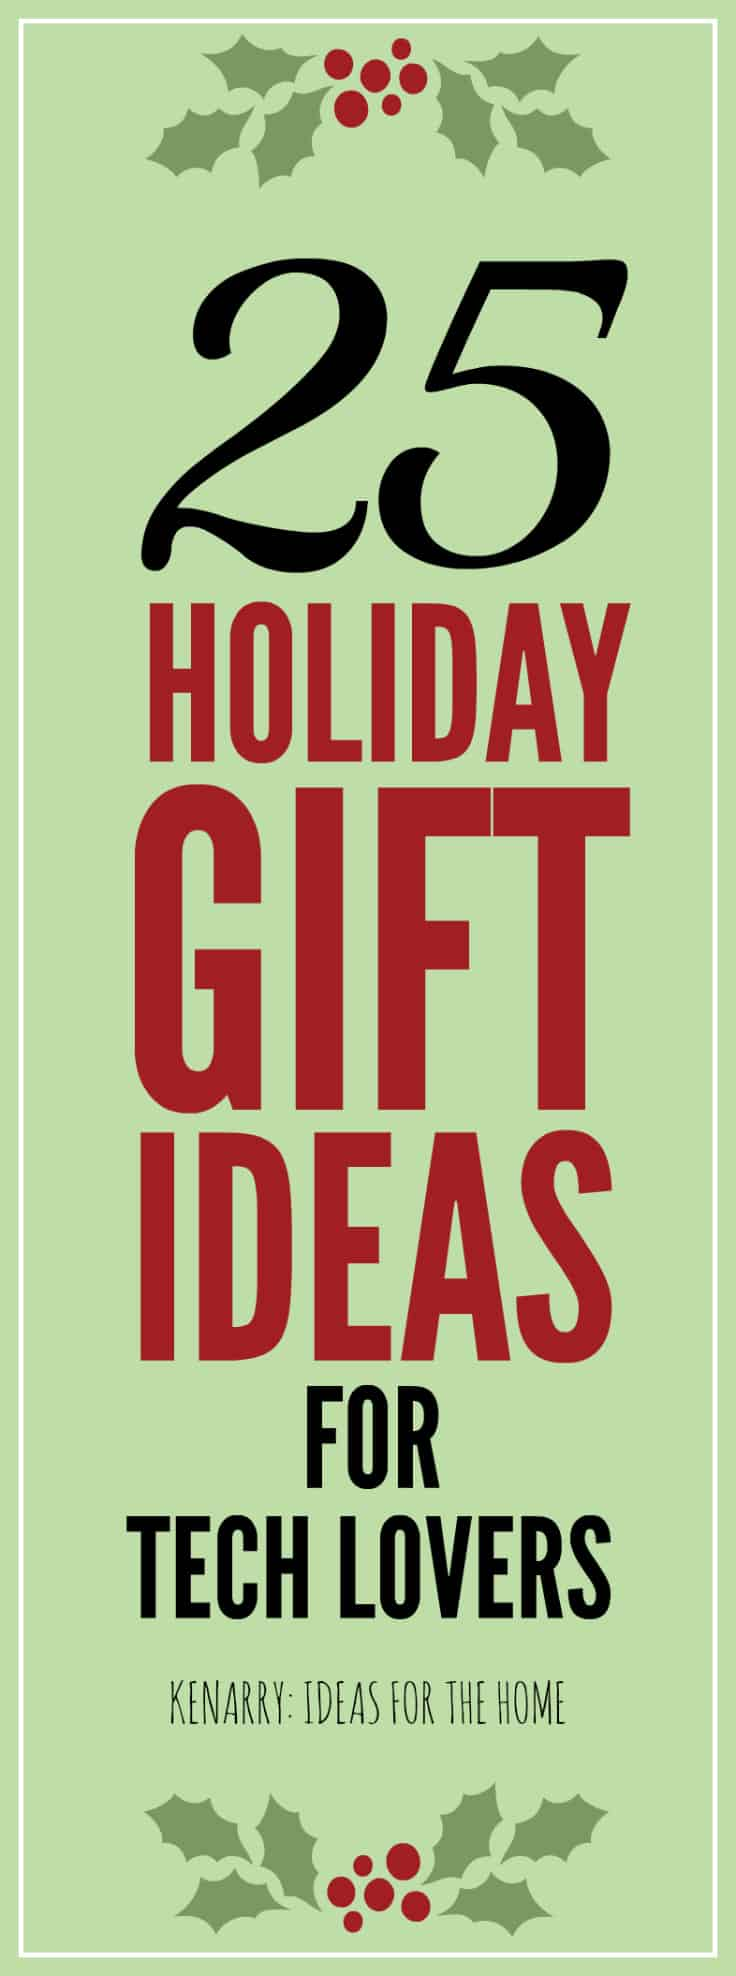 25 Best Holiday Gift Ideas for Tech Lovers